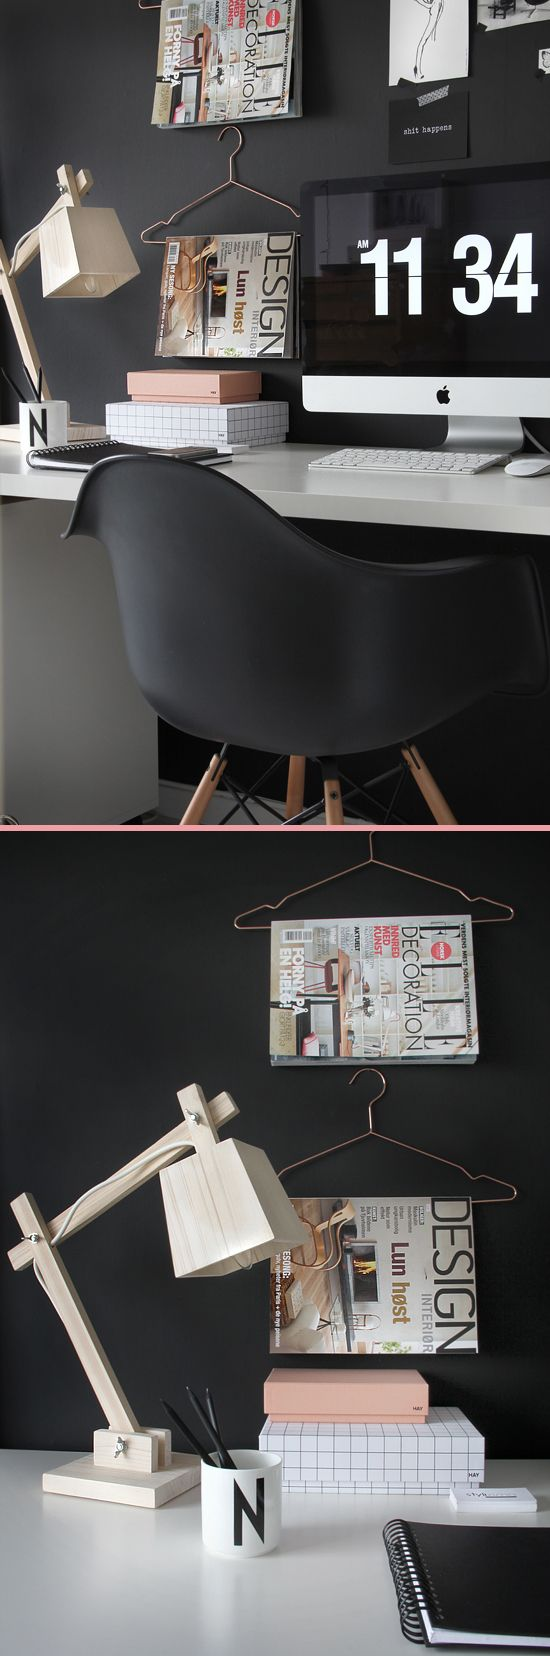 Against a black wall, with black Eames chair  wood accents. I like.